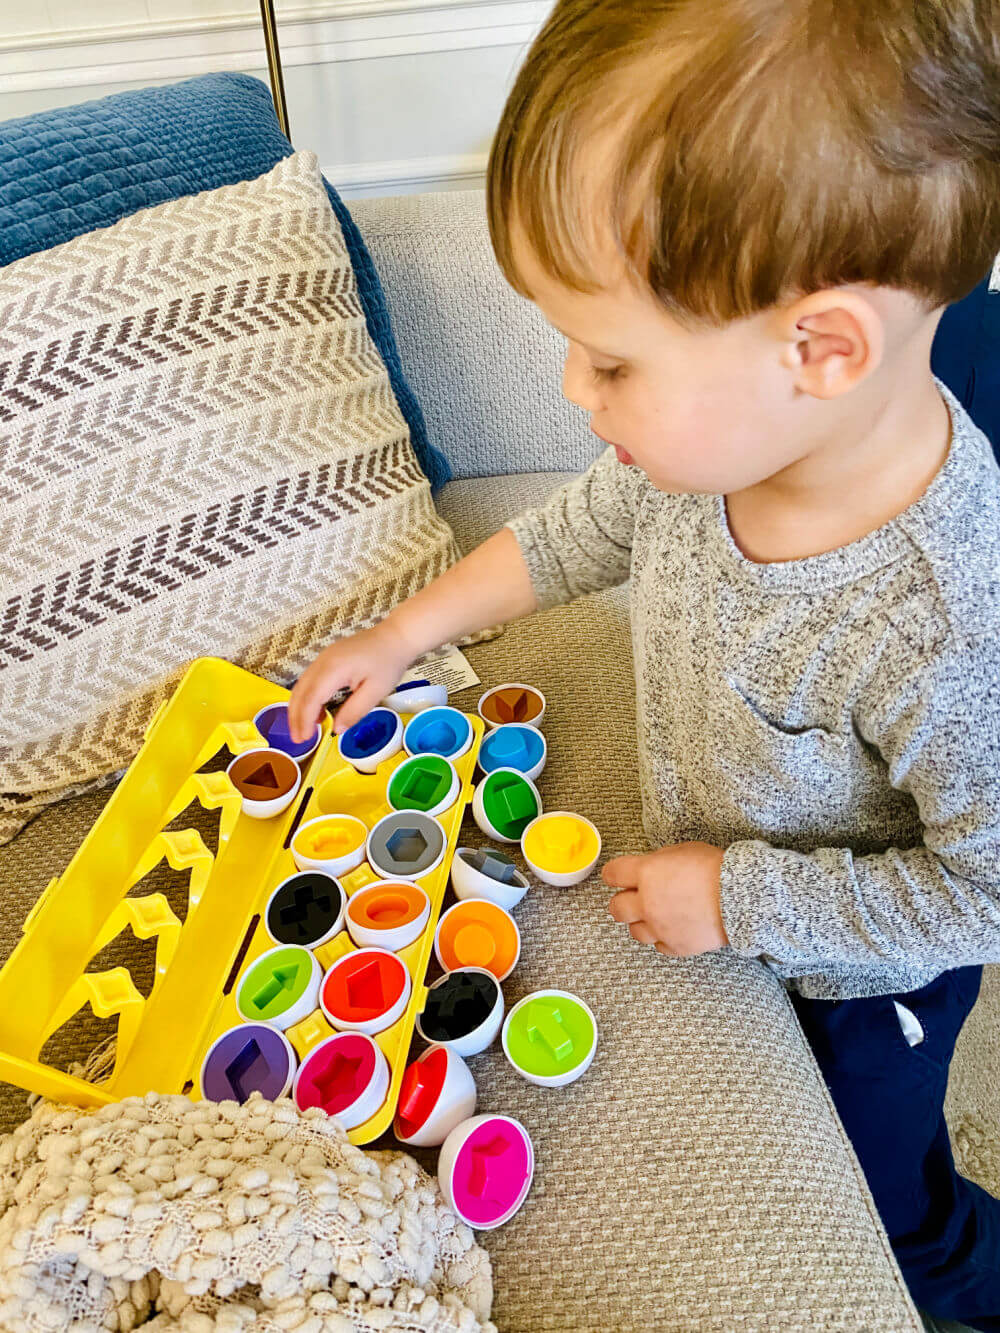 egg shape and color matching toy